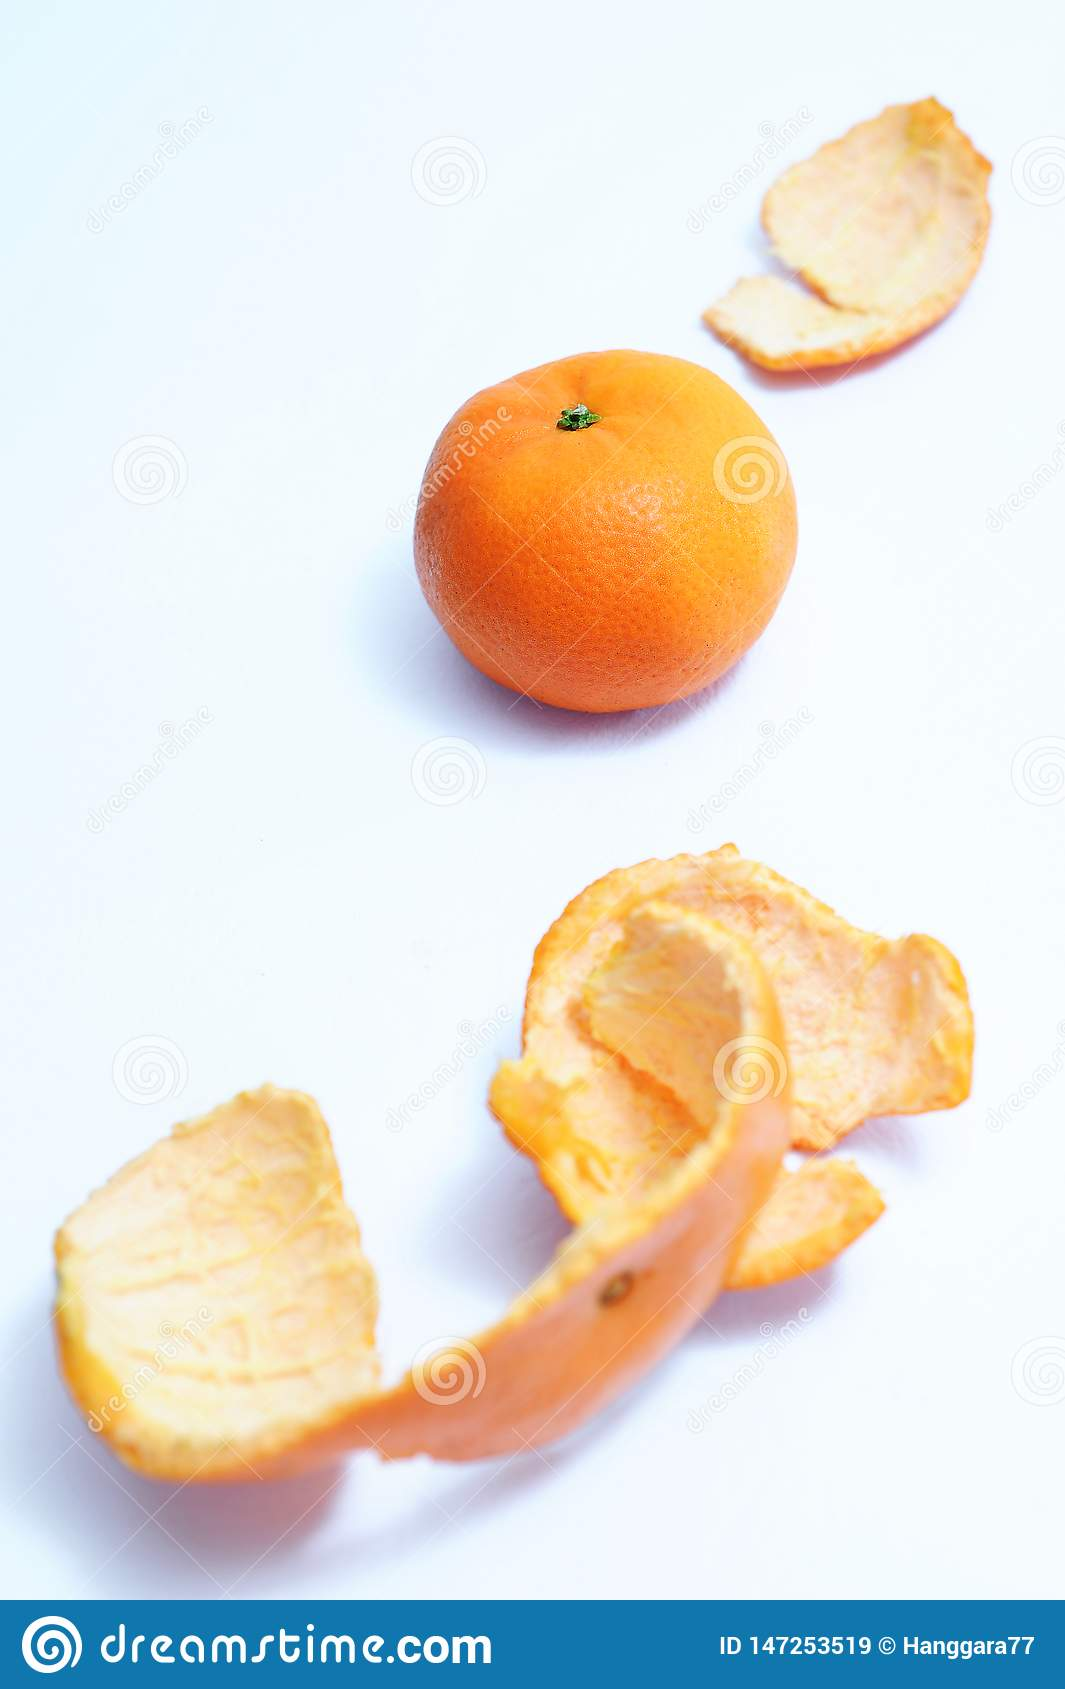 Healthy fruits, orange fruits, orange peeles skin as foreground from top view